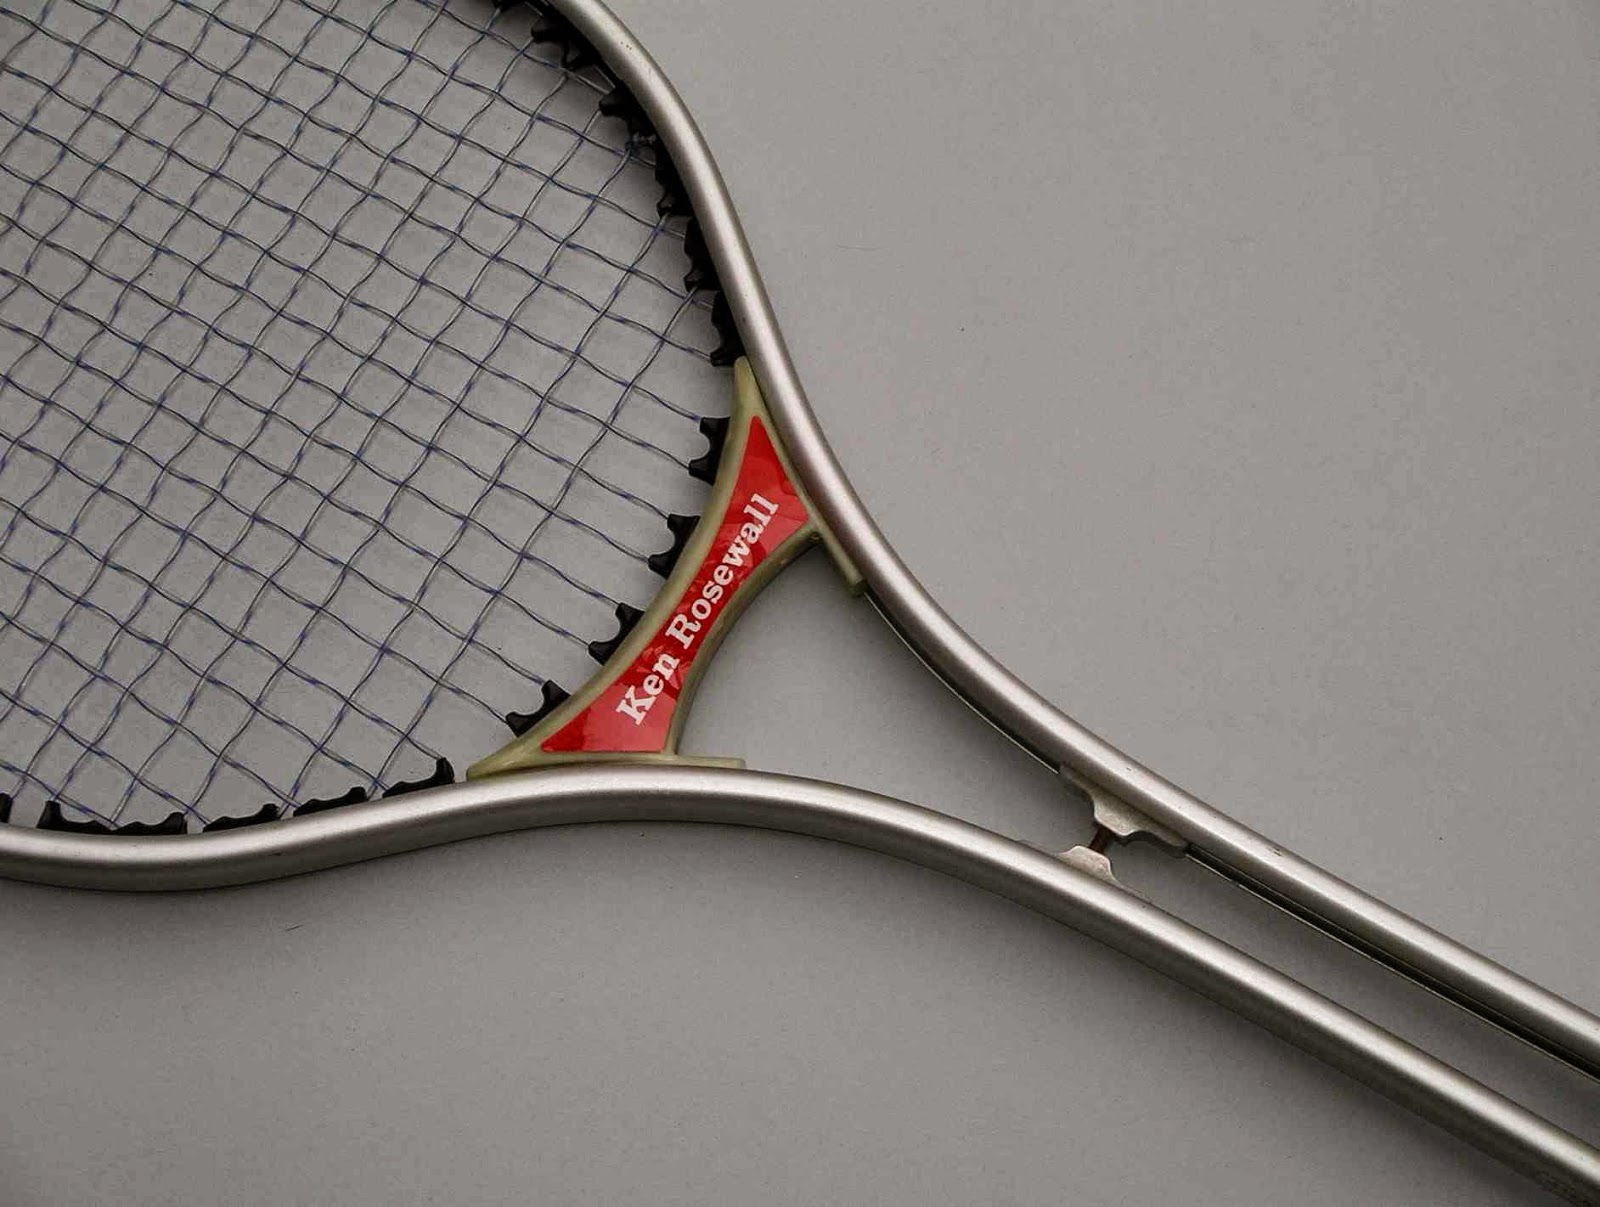 Found at http://www.merindolhalltennis.com.au/racquets/various5.htm